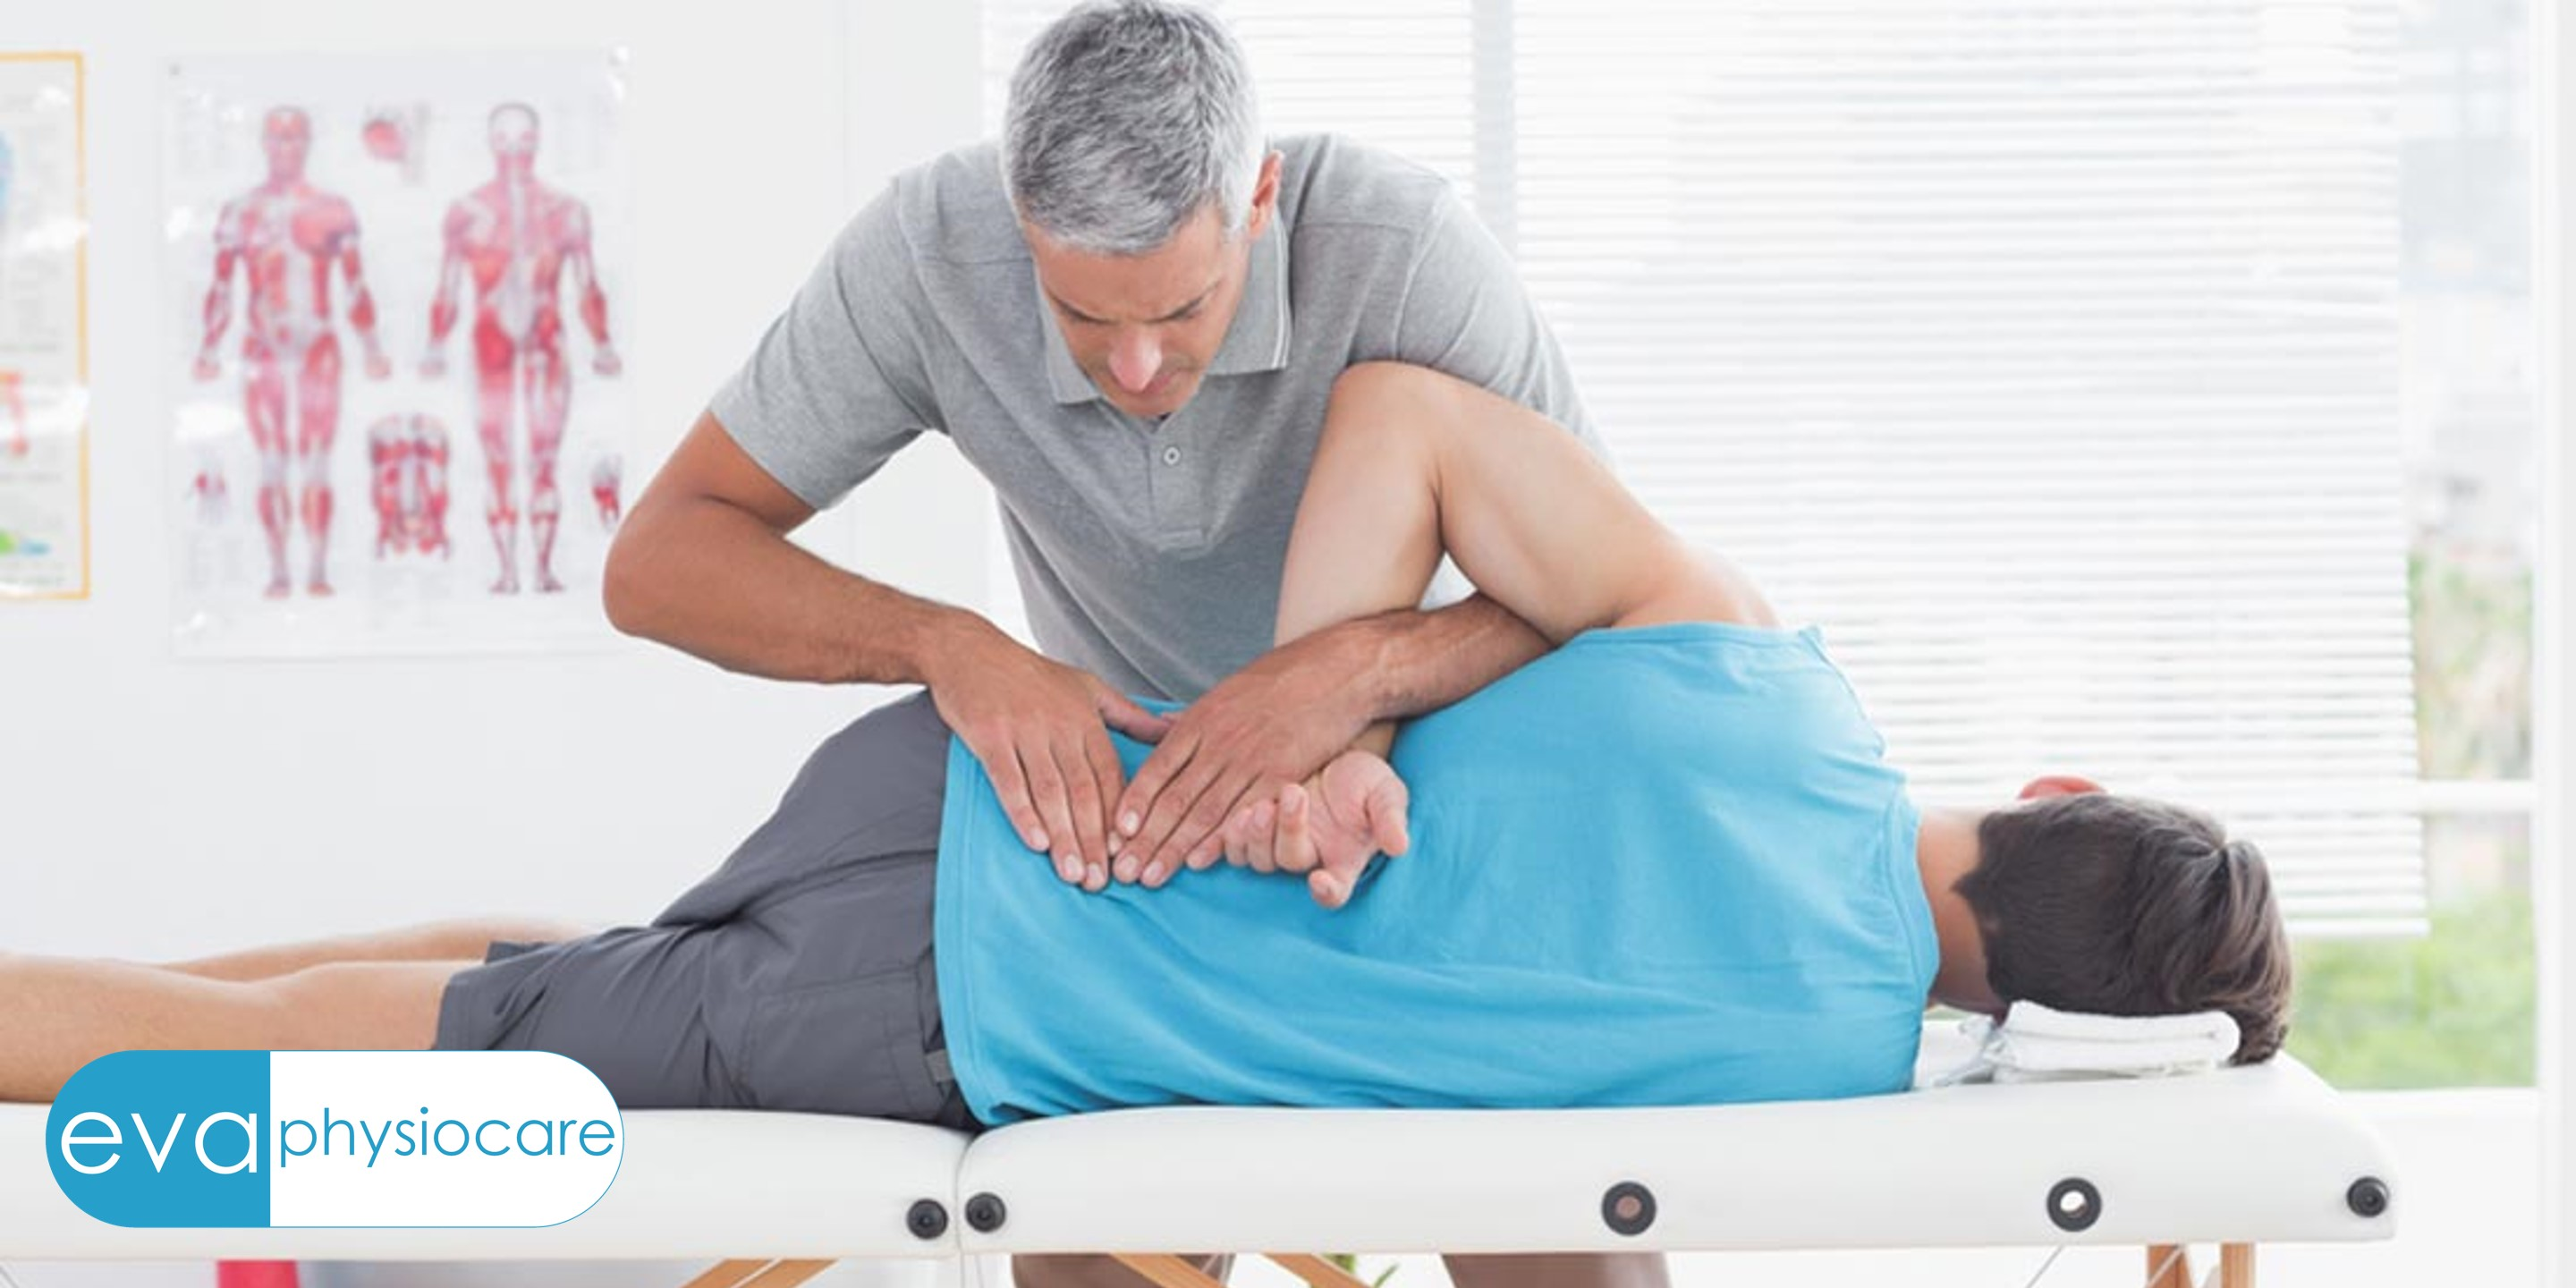 Spinal_Problem_Heel_Pain_Physiotherapy_Evaphysiocare